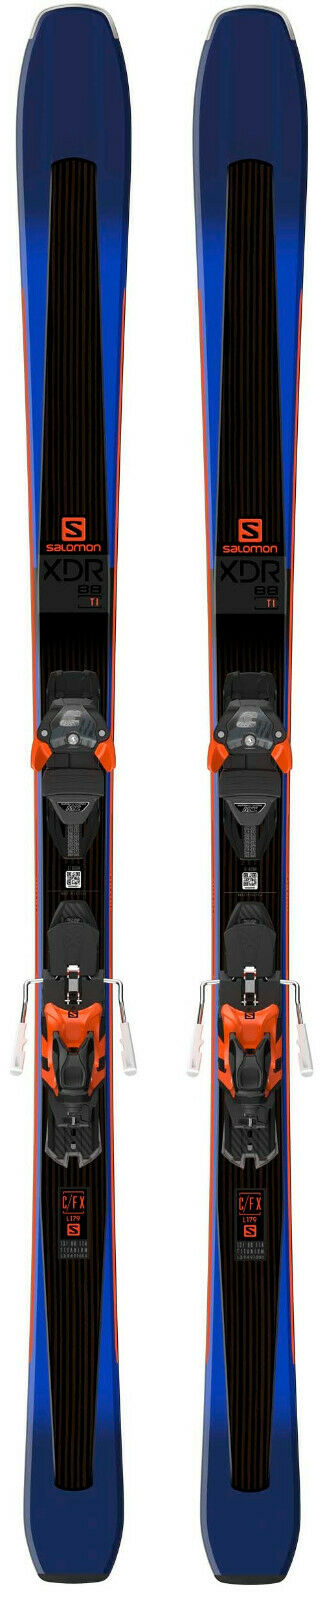 2019 Salomon XDR 88 snow skis w-bindings 179cm (CLEARANCE) NEW